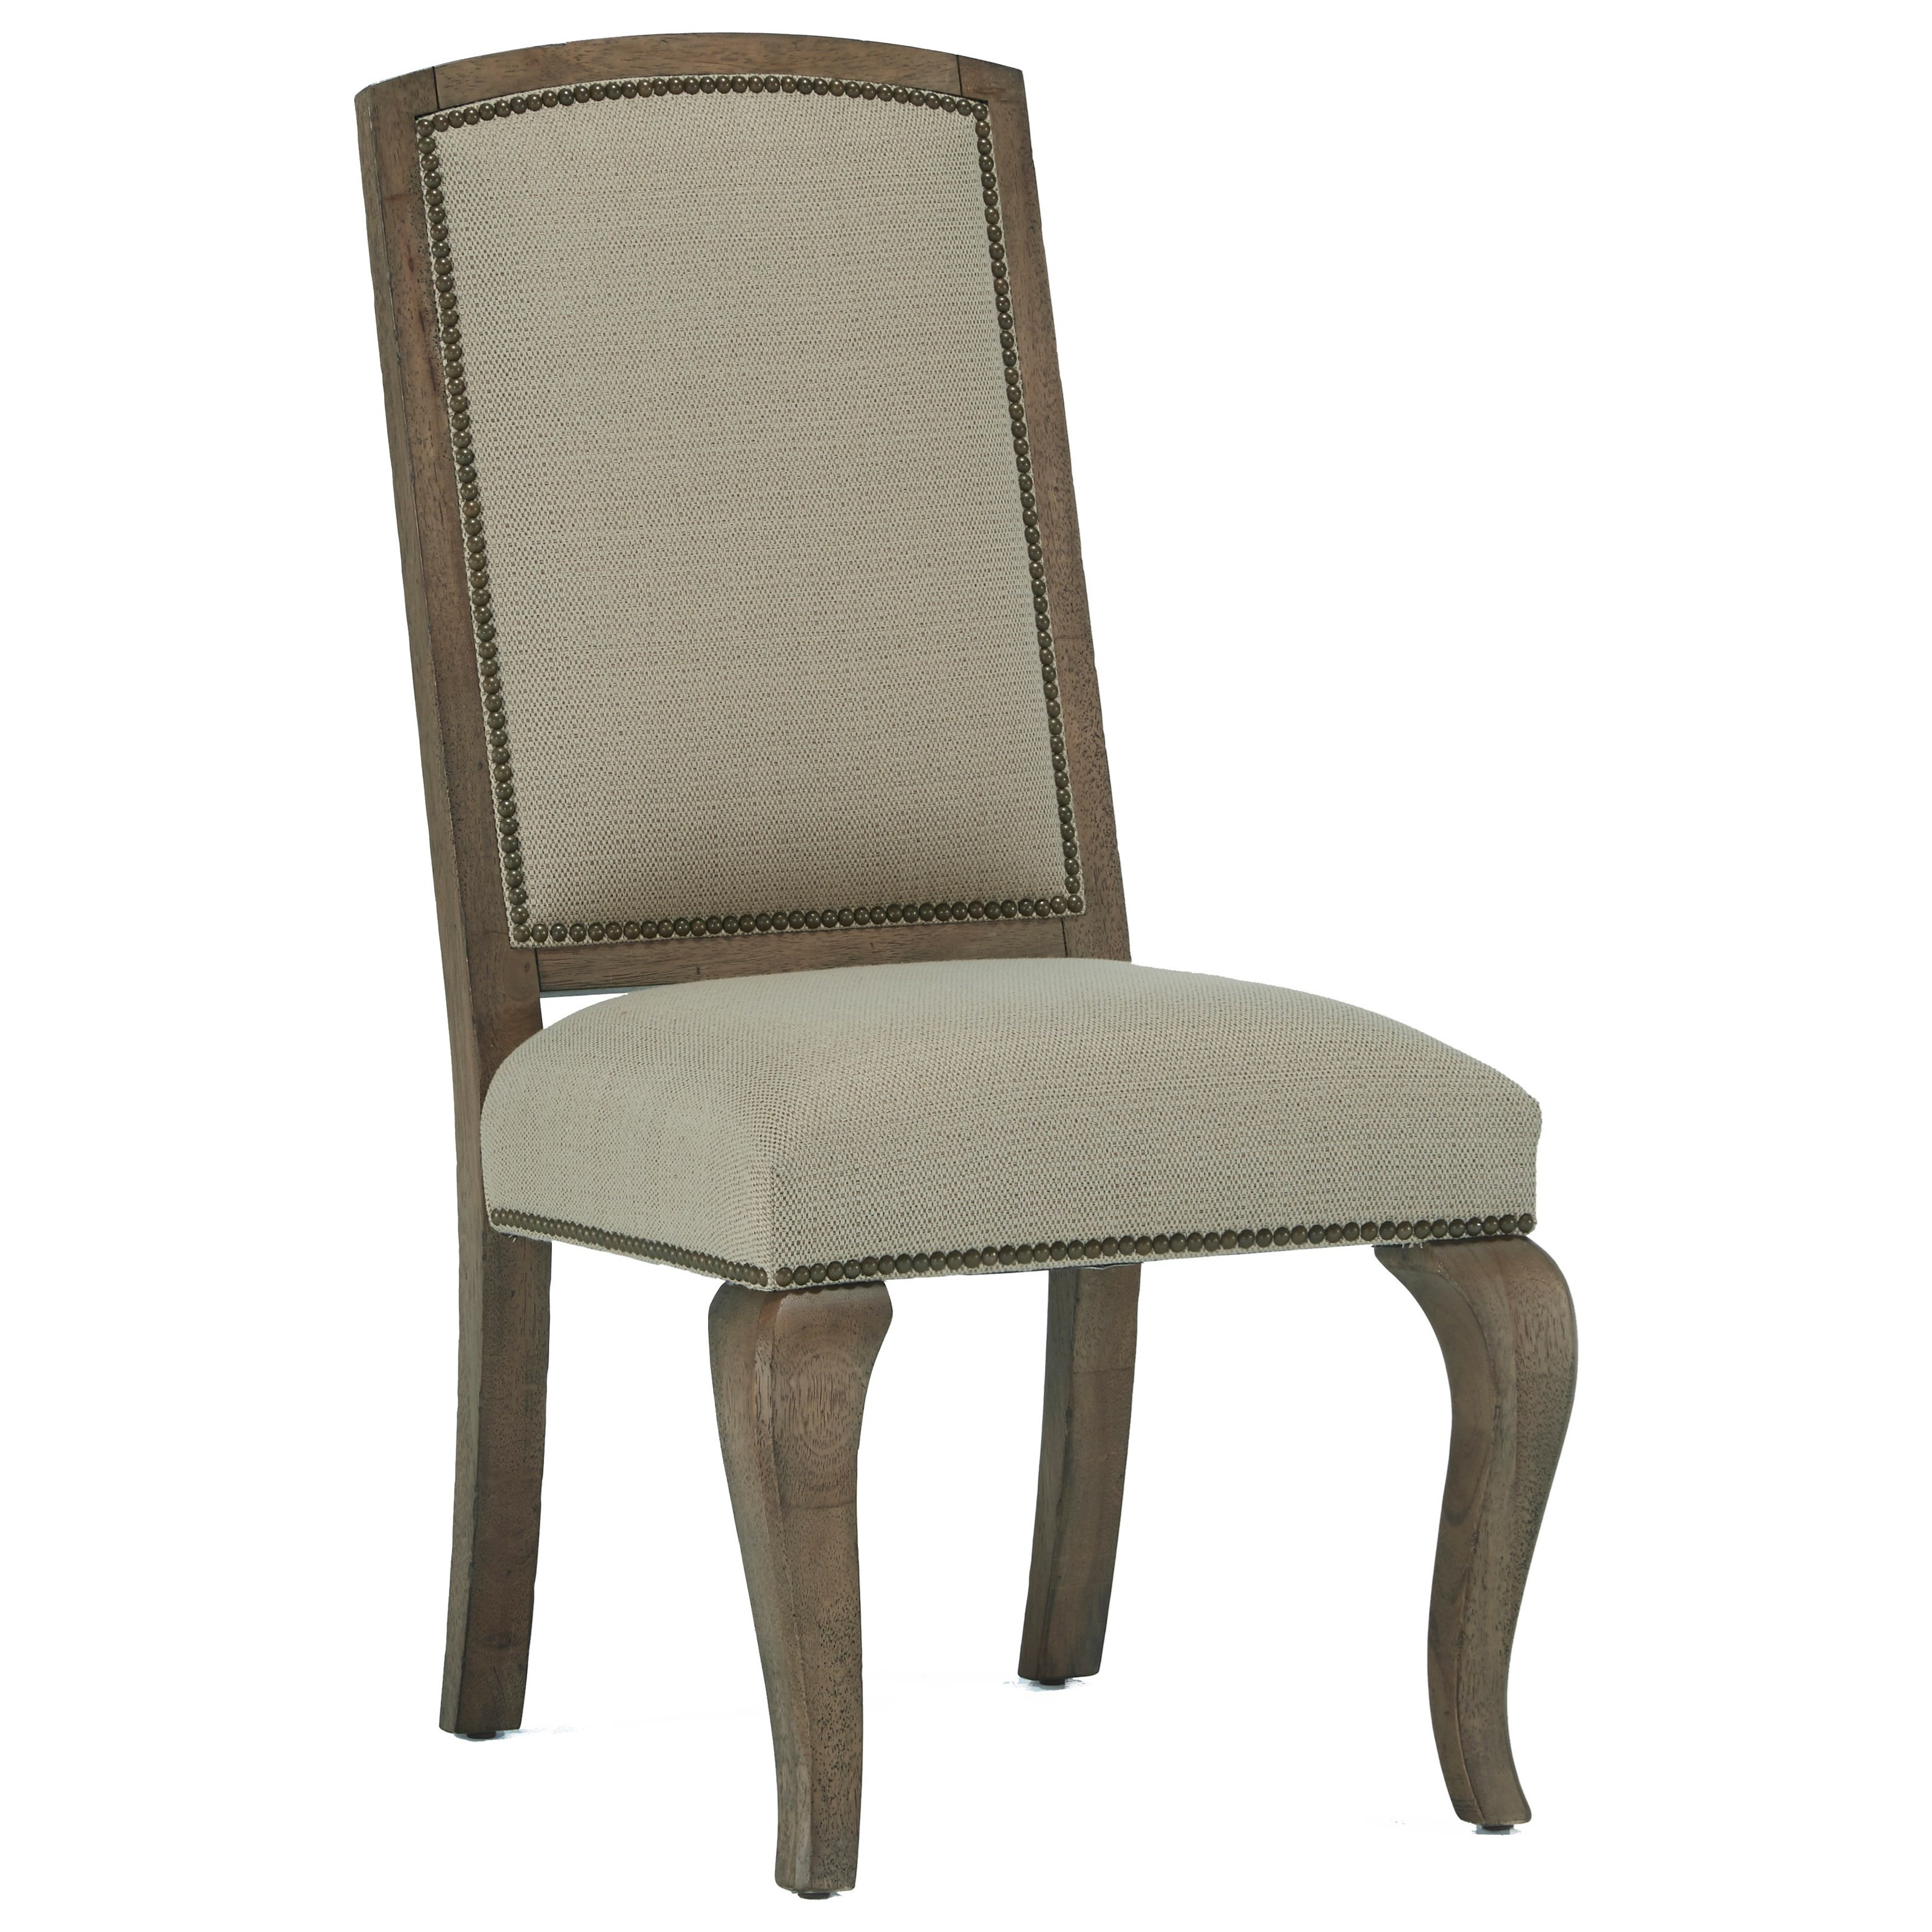 Broyhill Furniture Bedford Avenue Flushing Avenue Tapestry Side Chair - Item Number: 8615-538